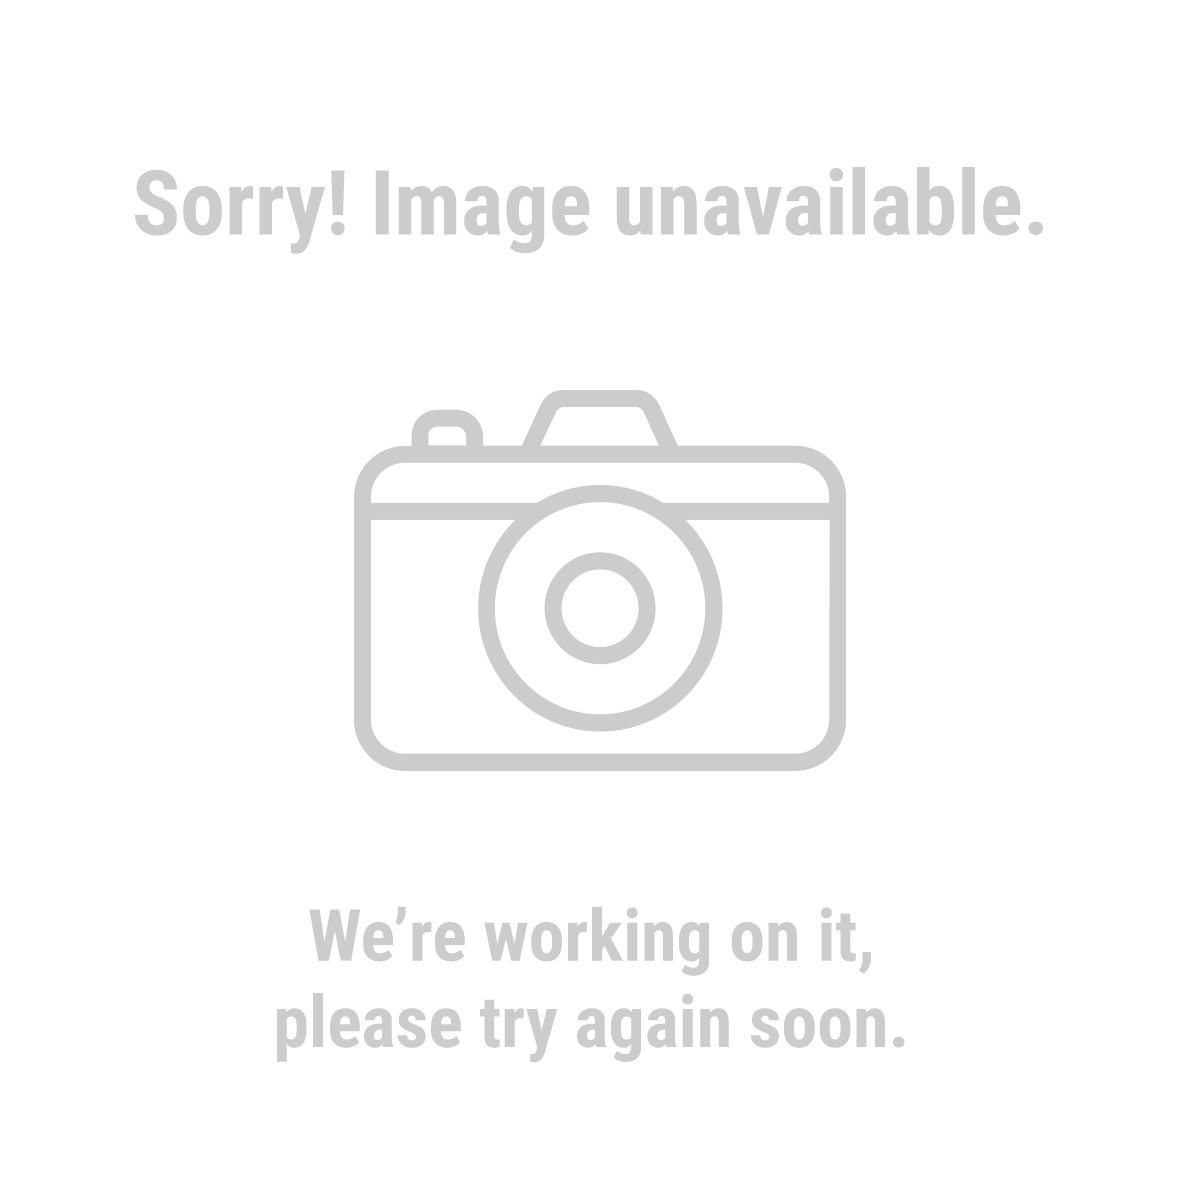 Central Pneumatic® 68057 18/16 Gauge 3-in-1 Air Nailer/Stapler